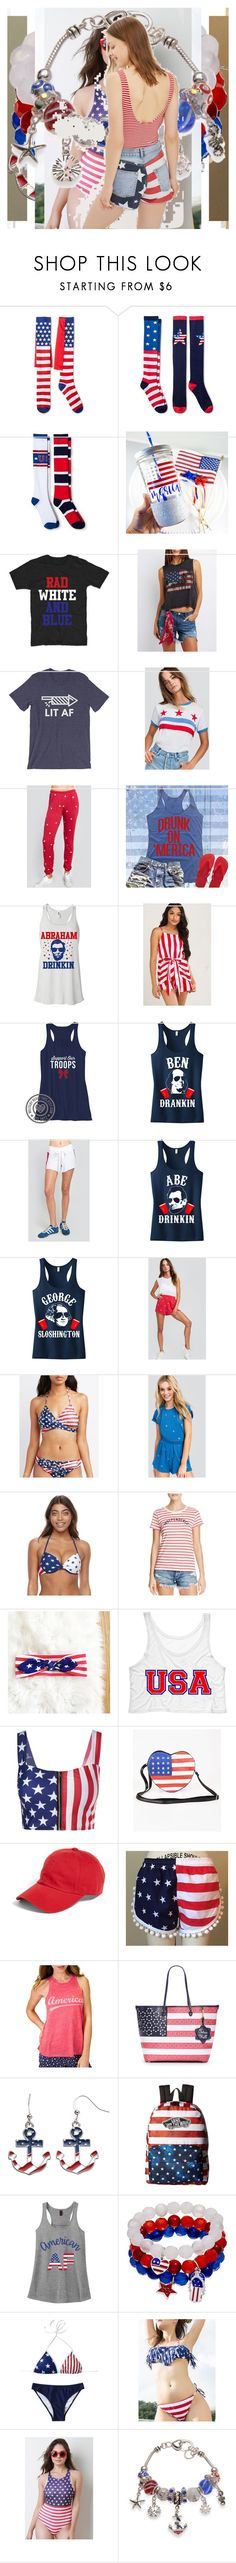 """""""4th"""" by queenet ❤ liked on Polyvore featuring Charlotte Russe, Wildfox, SO, Alternative, American Needle, P.J. Salvage, Draper James, Vans, Kim Rogers and Topshop"""